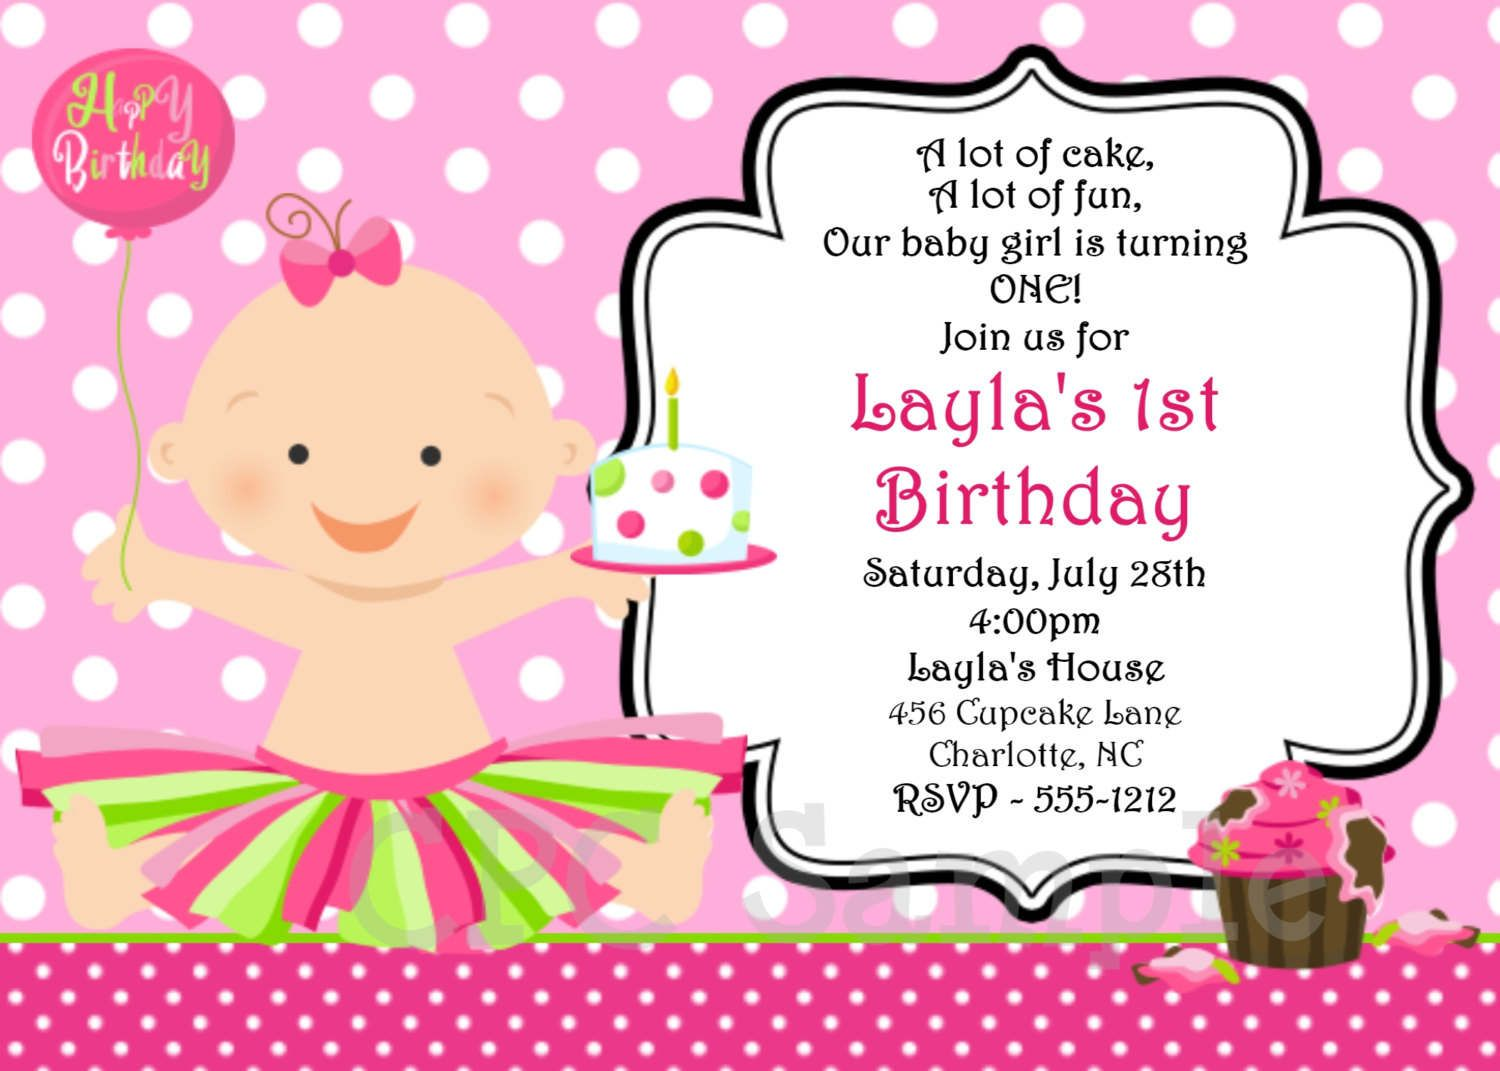 Birthday Invites Free Birthday Invitation Maker Images Downloads – Birthday Invitations Maker